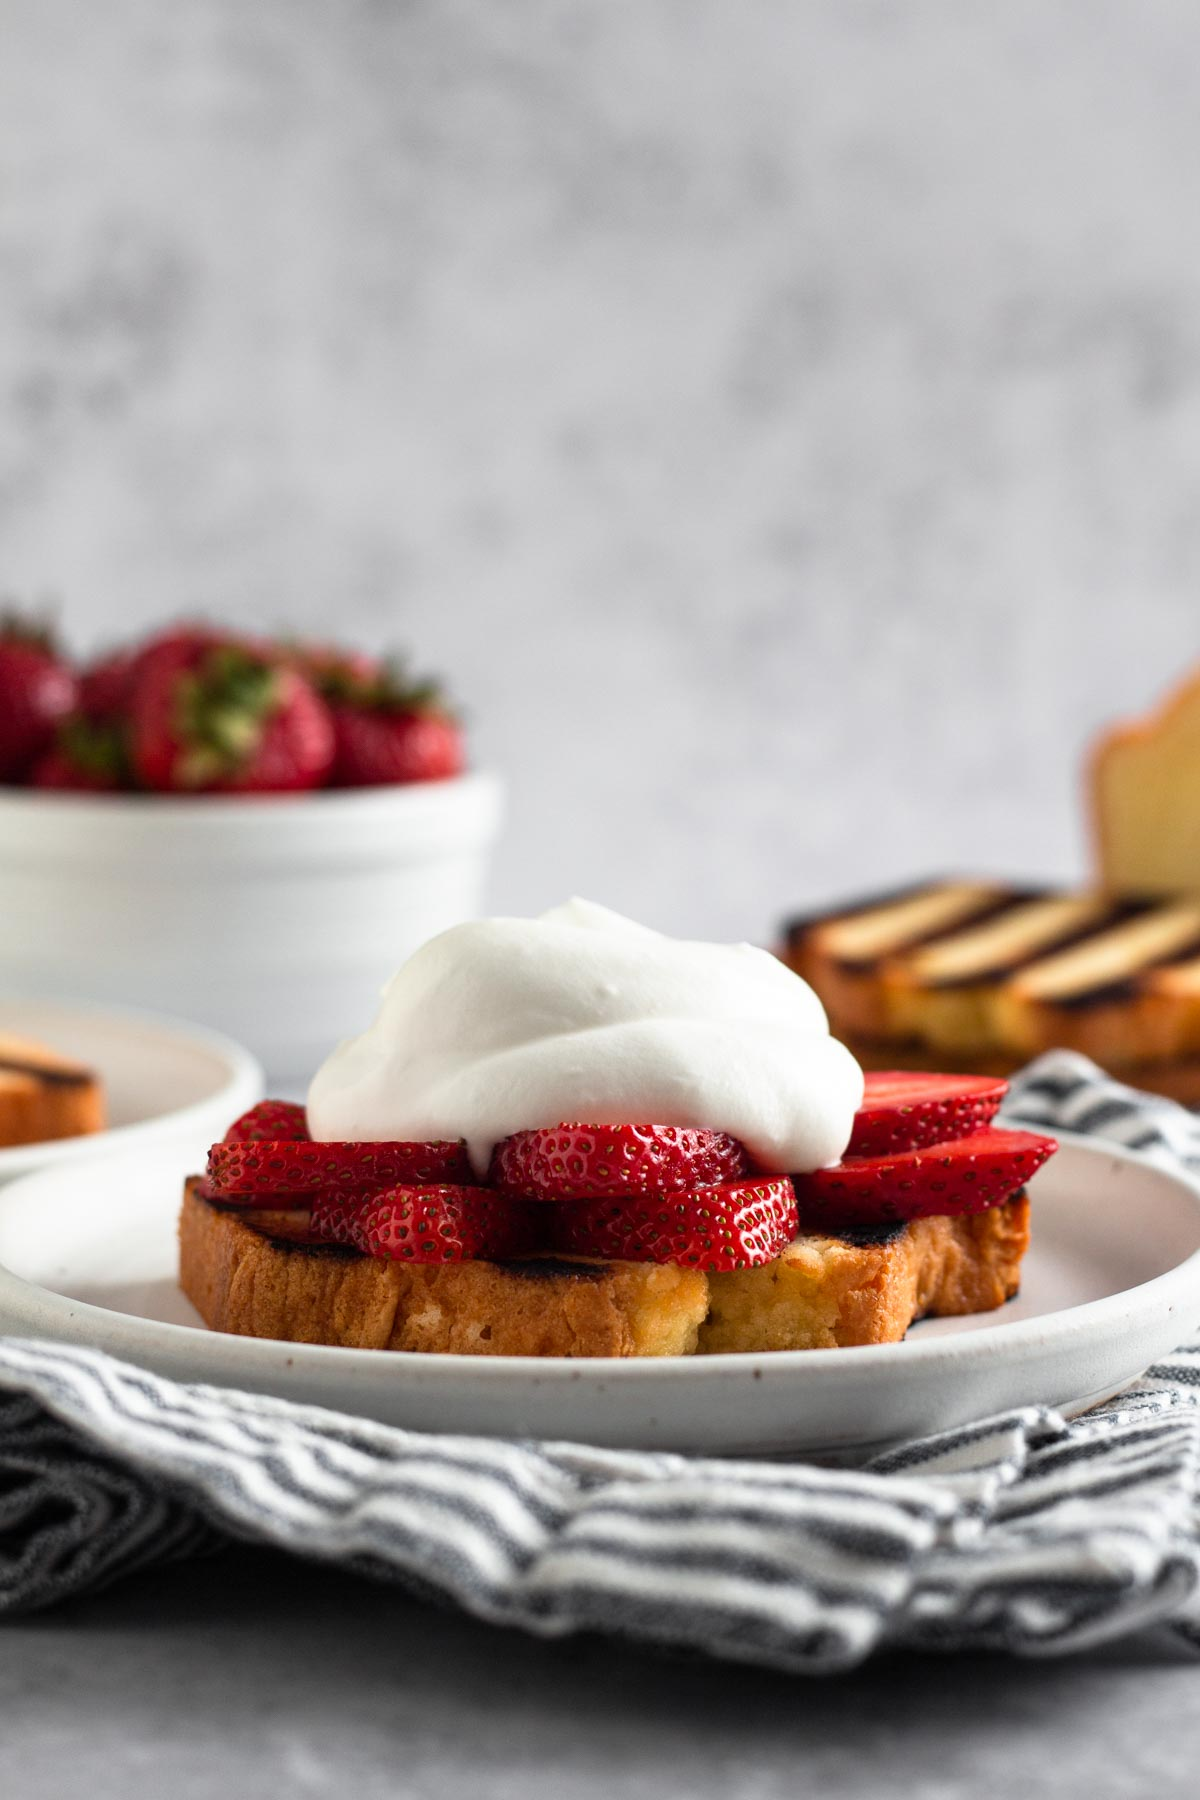 side view of a slice of pound cake topped with sliced strawberries and whipped cream